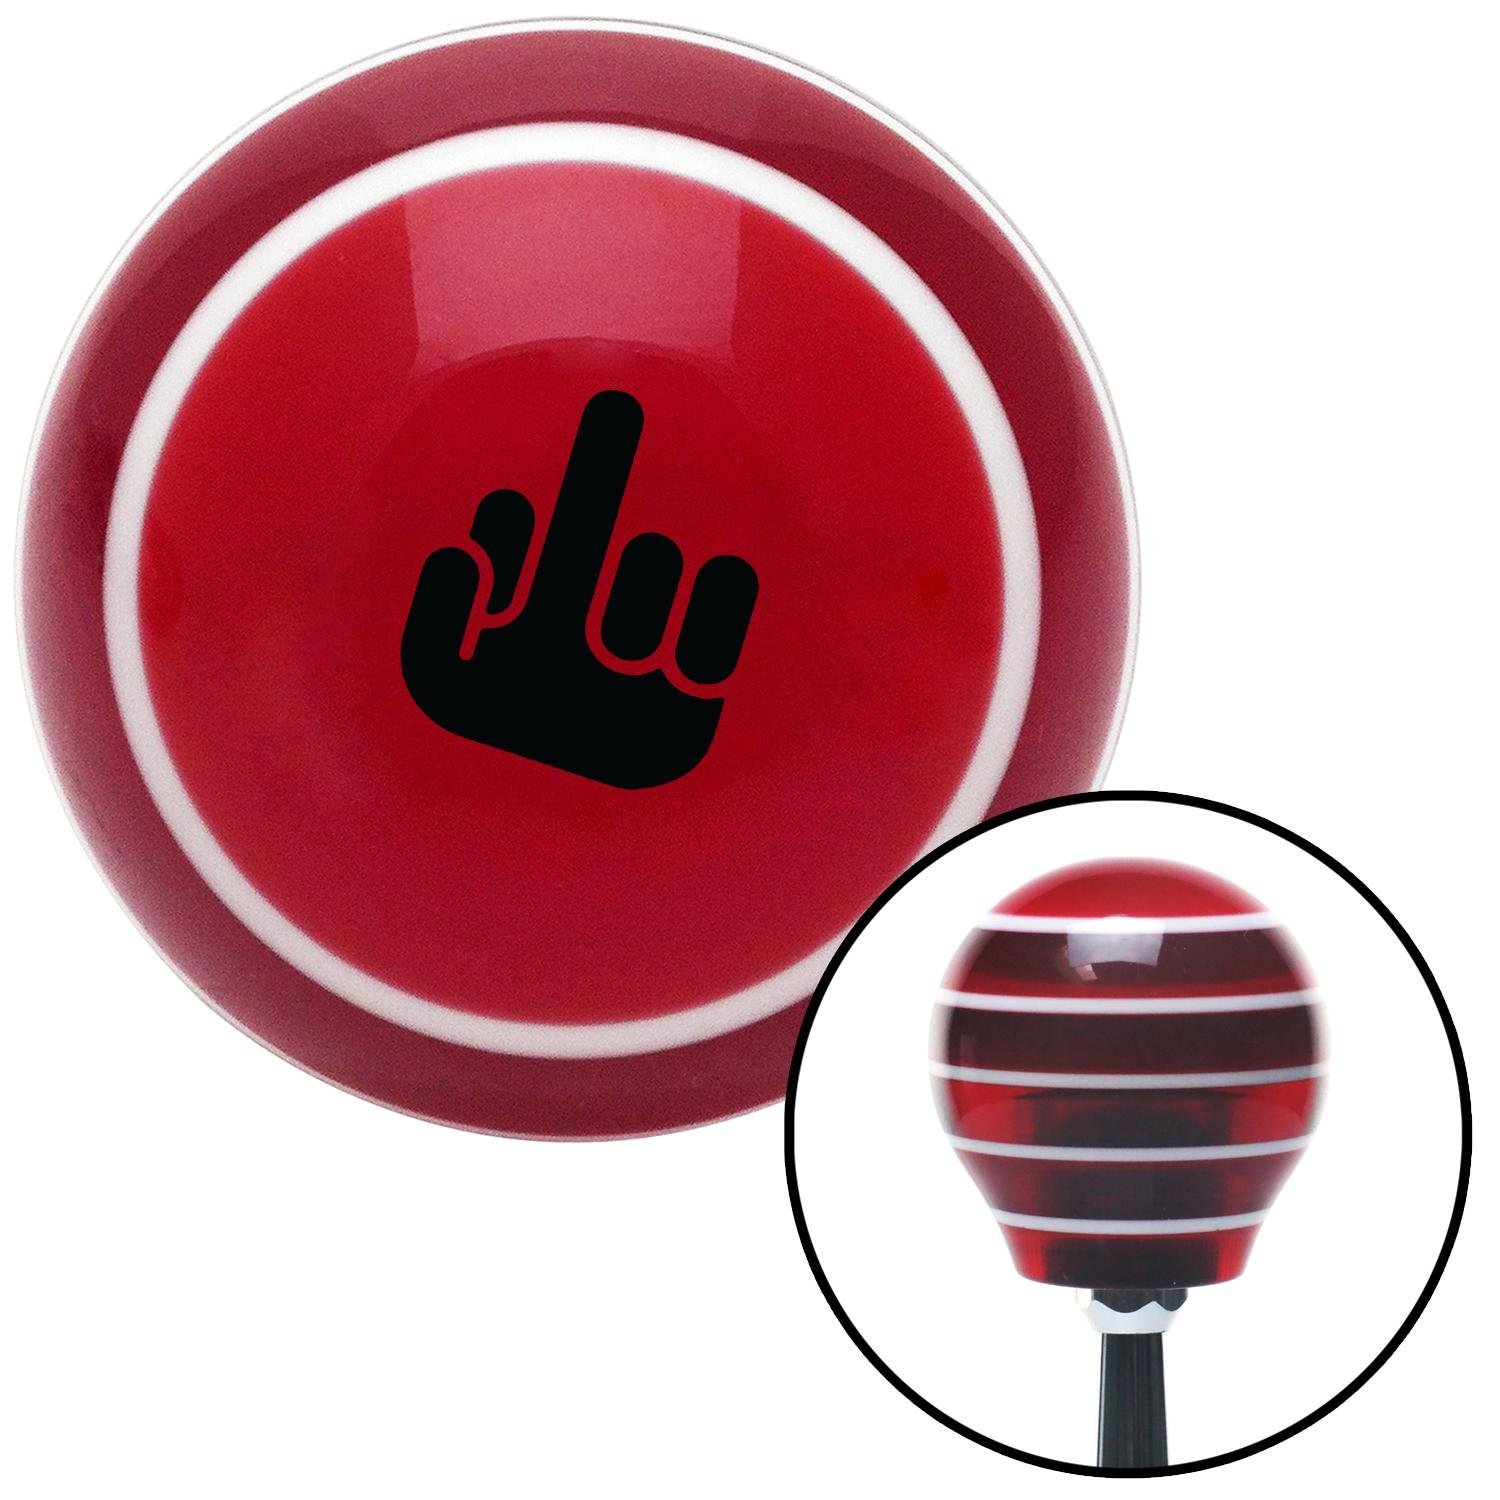 American Shifter 274172 Shift Knob Black Middle Finger Solid Red Stripe with M16 x 1.5 Insert